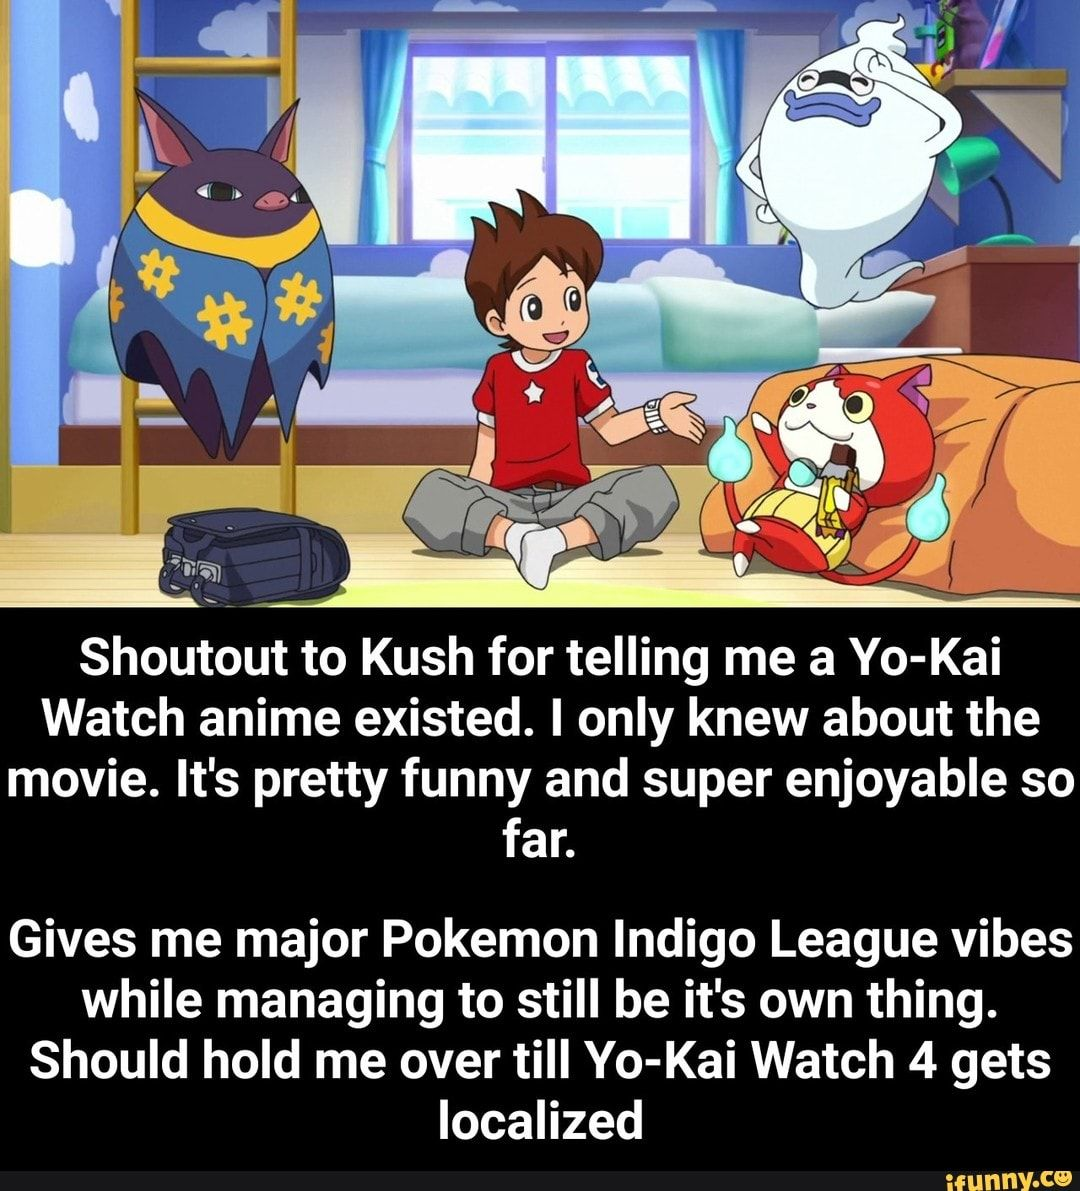 Shoutout To Kush For Telling Me A Yo Kai Watch Anime Existed I Only Knew About The Movie It S Pretty Funny And Super Enjoyable So Far Gives Me Major Pokemon Pokemon